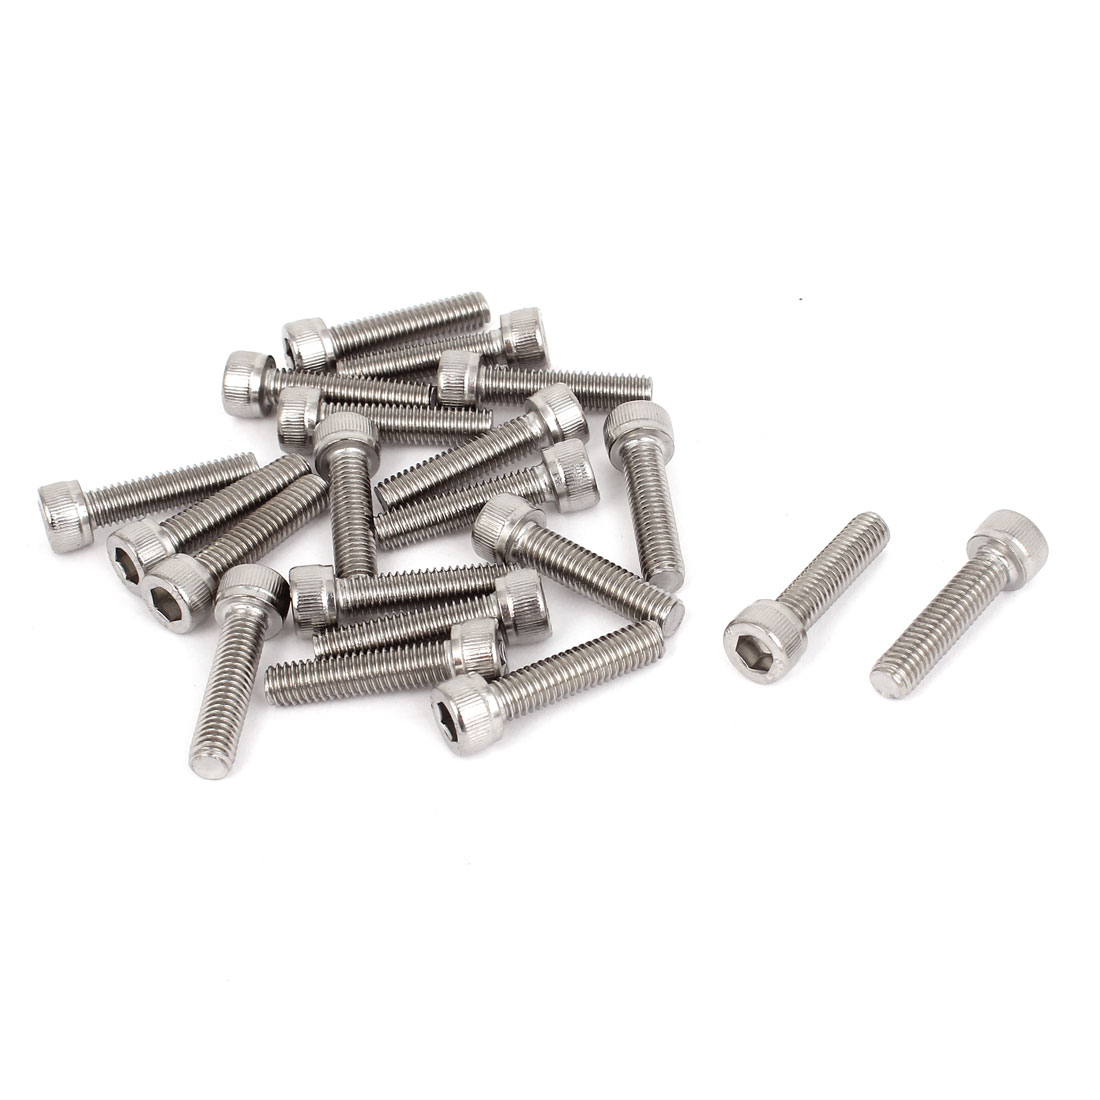 M6x25mm Stainless Steel Hex Socket Cap Screws Head Key Bolts 20 Pcs